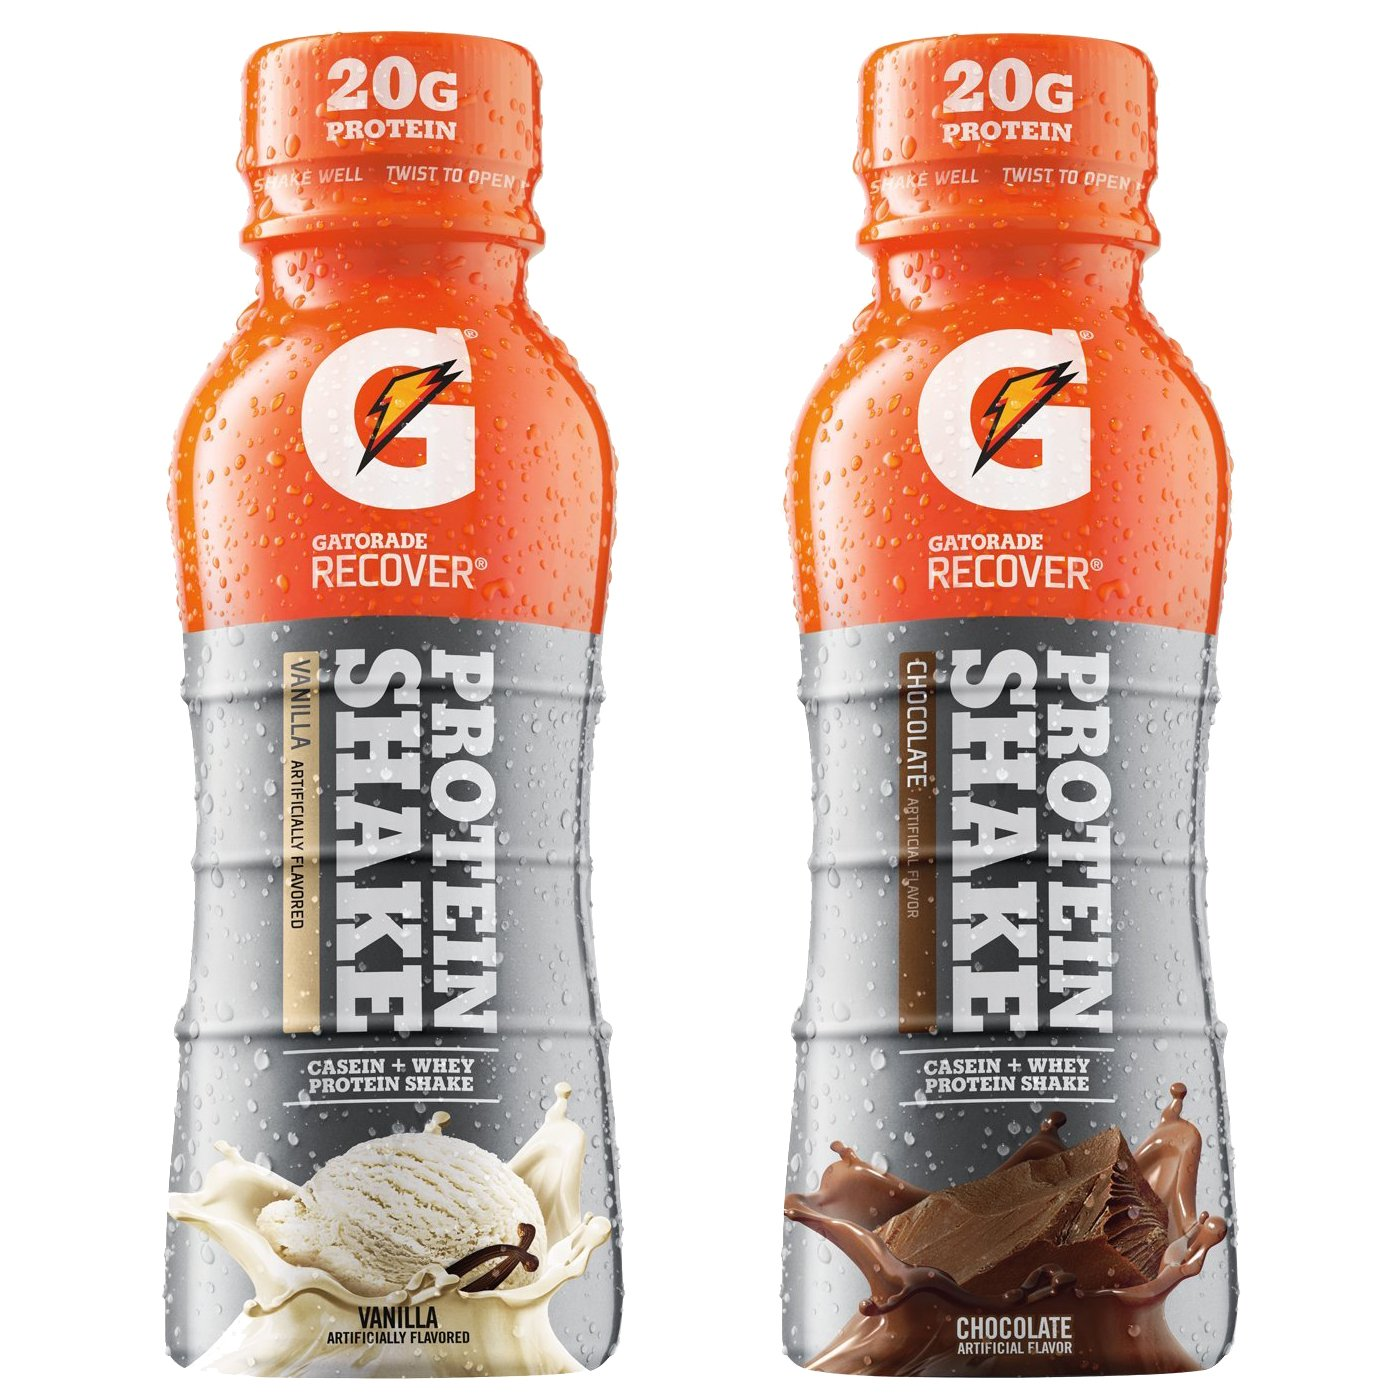 Image result for gatorade recover protein shake